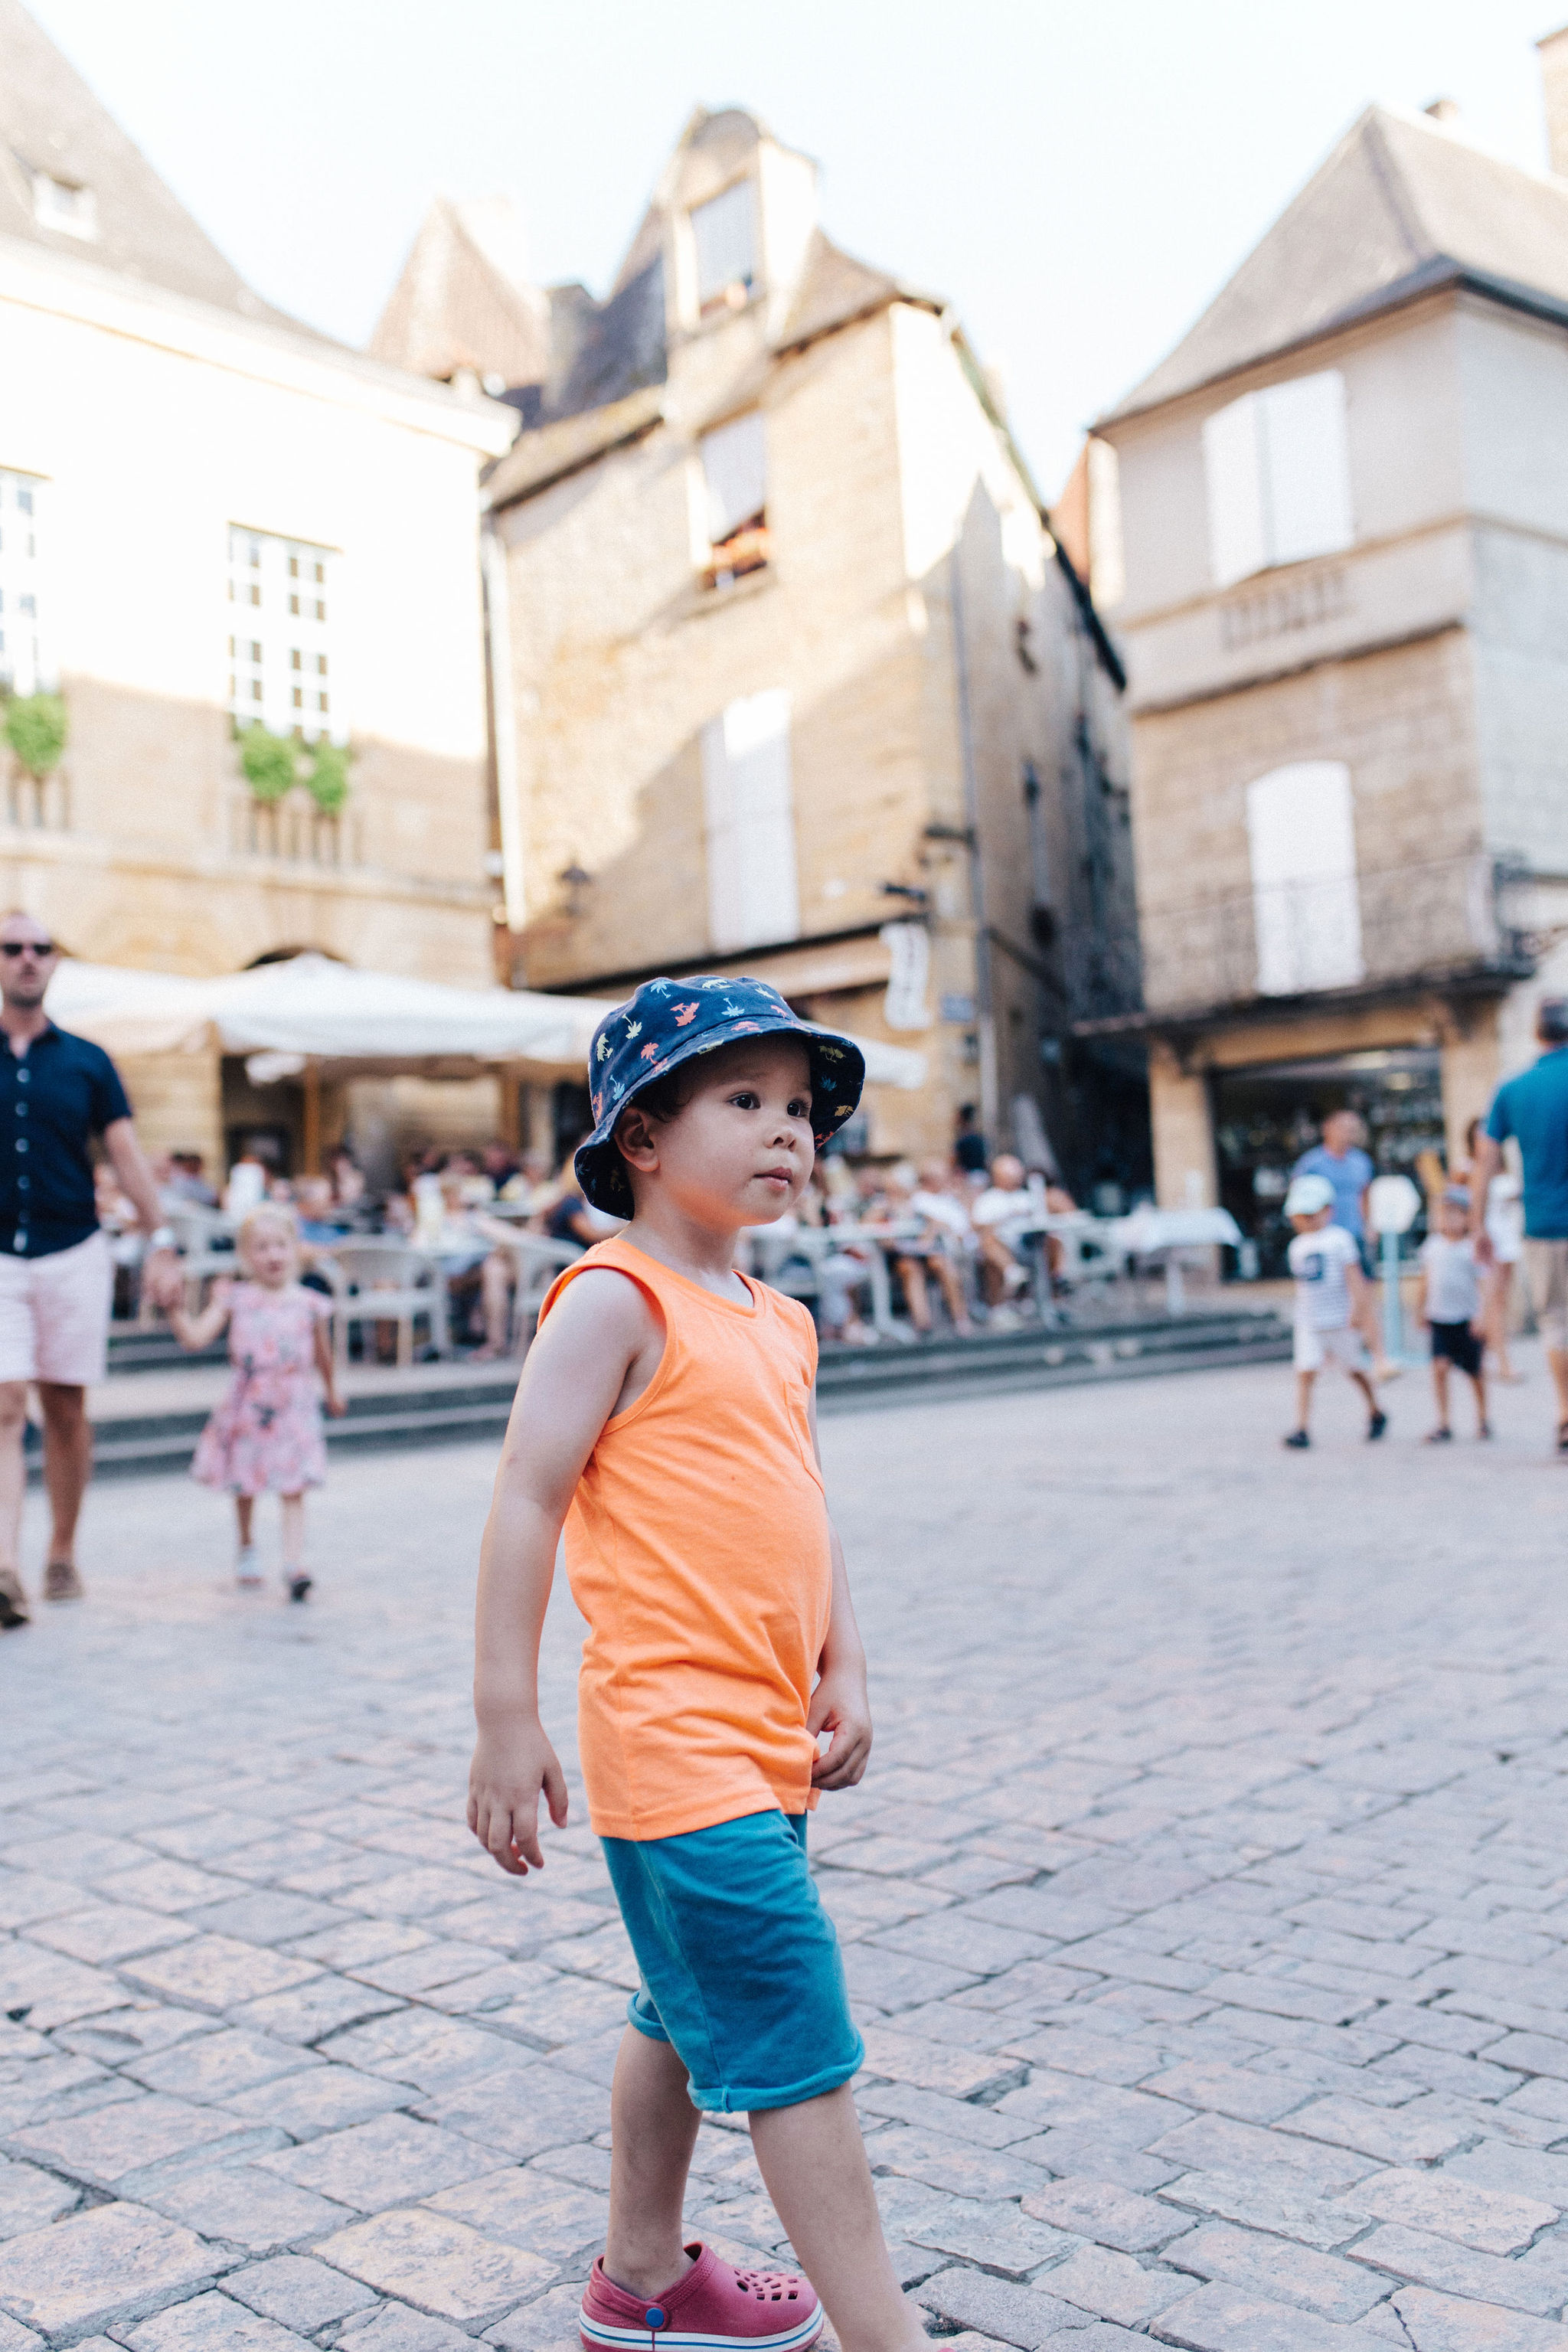 Boy in main square of Sarlat